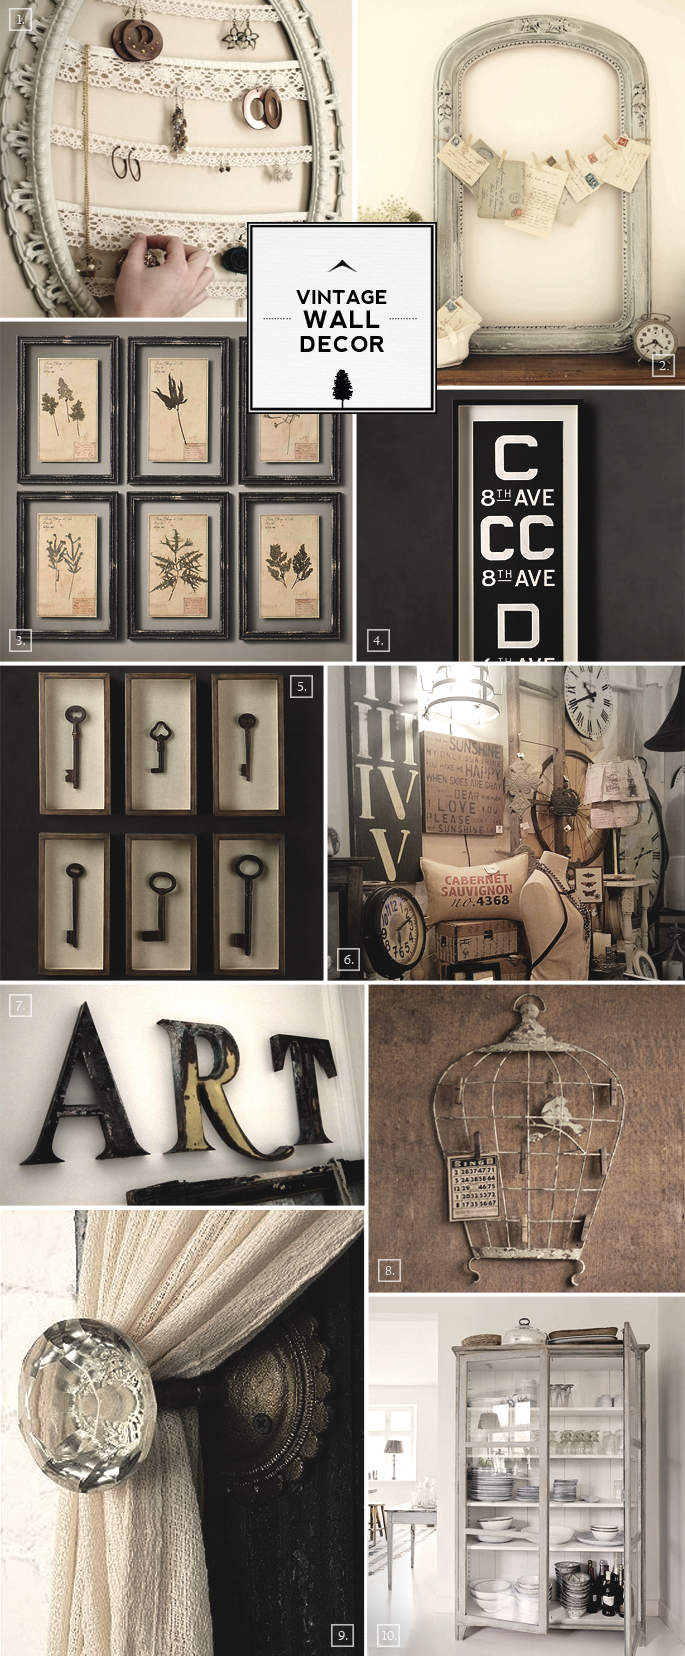 Top Vintage Wall Decor Ideas: From Bird Cages to Designing with Frames  JK63